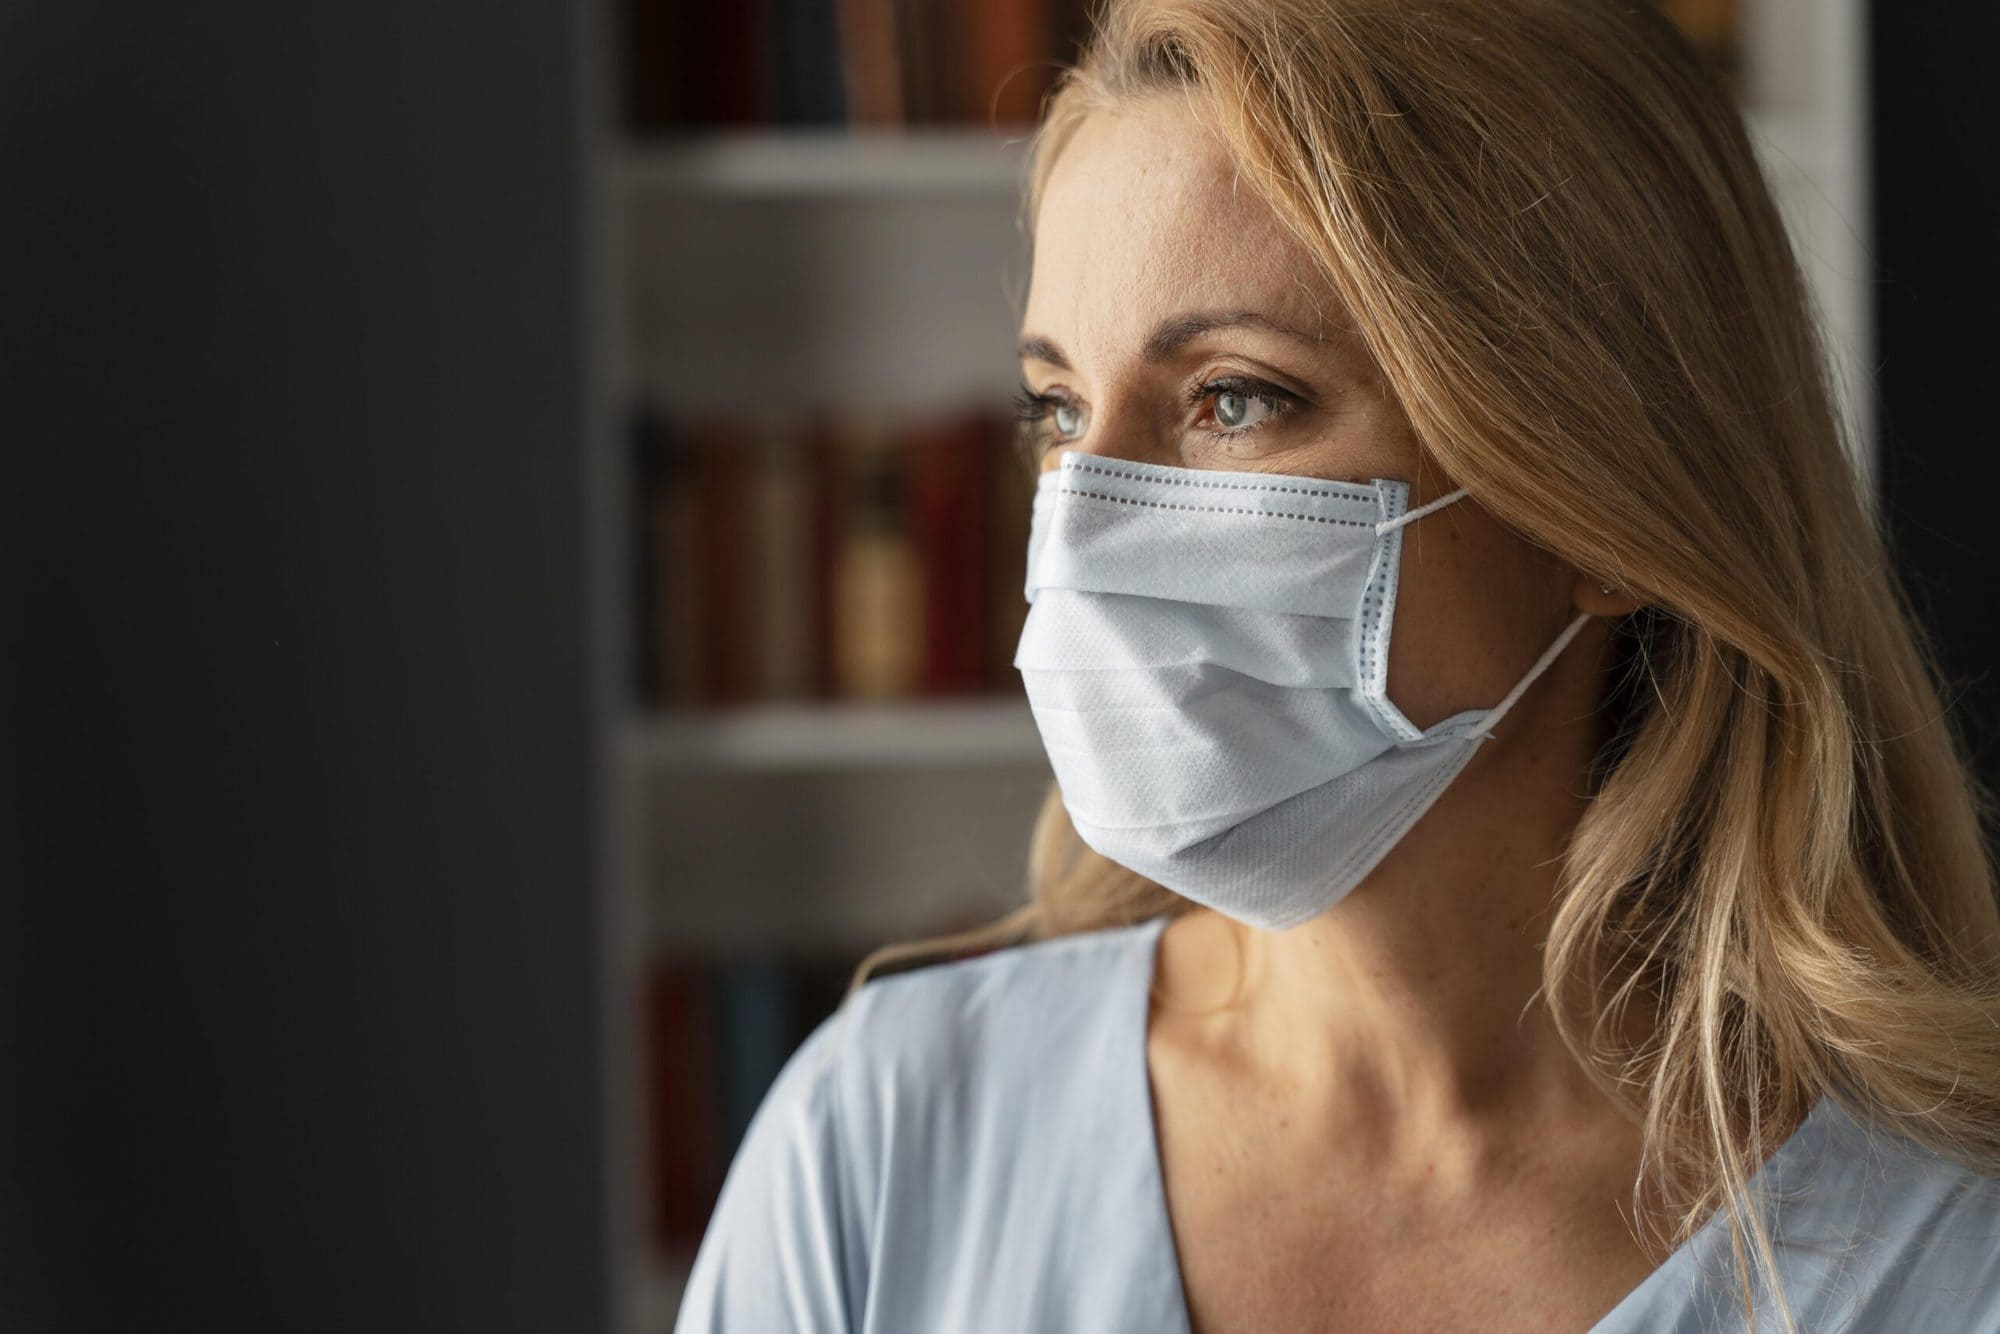 portrait-woman-counselor-with-face-mask-office